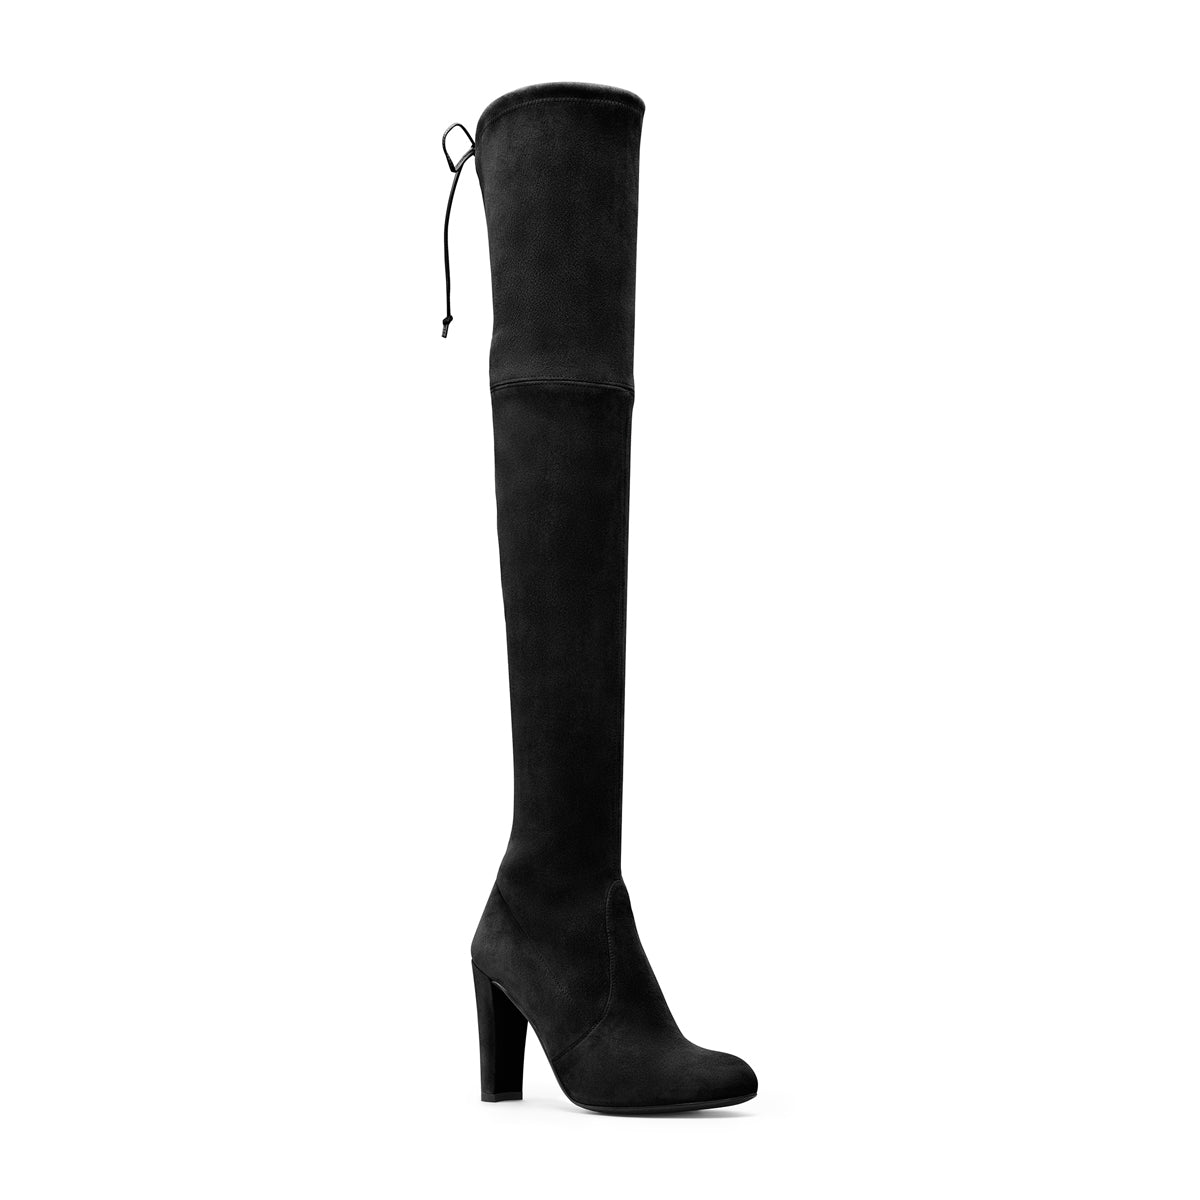 Highland Thigh High Boots